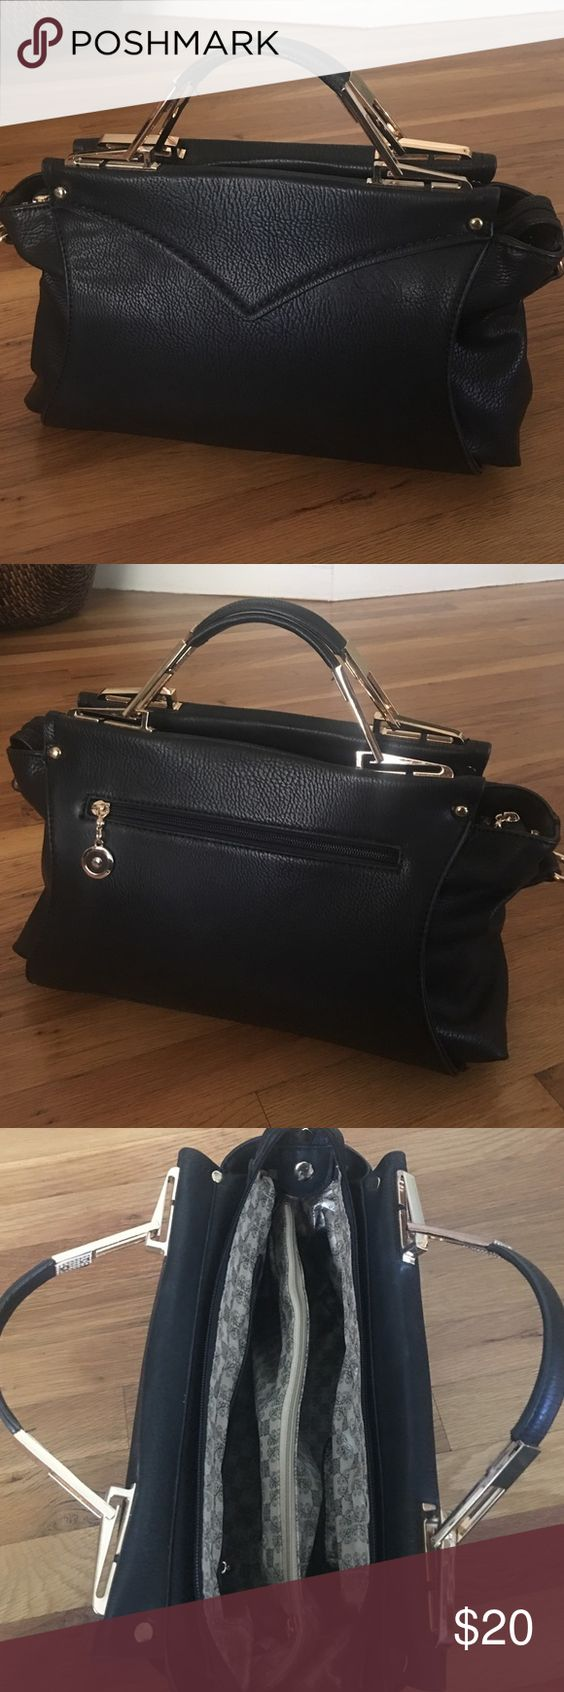 Chic Black Bag This pretty black bag with gold detail can hang on your arm or used with the detachable shoulder strap. Zip closure with pockets inside. Barely used. Excellent condition. Bags Satchels